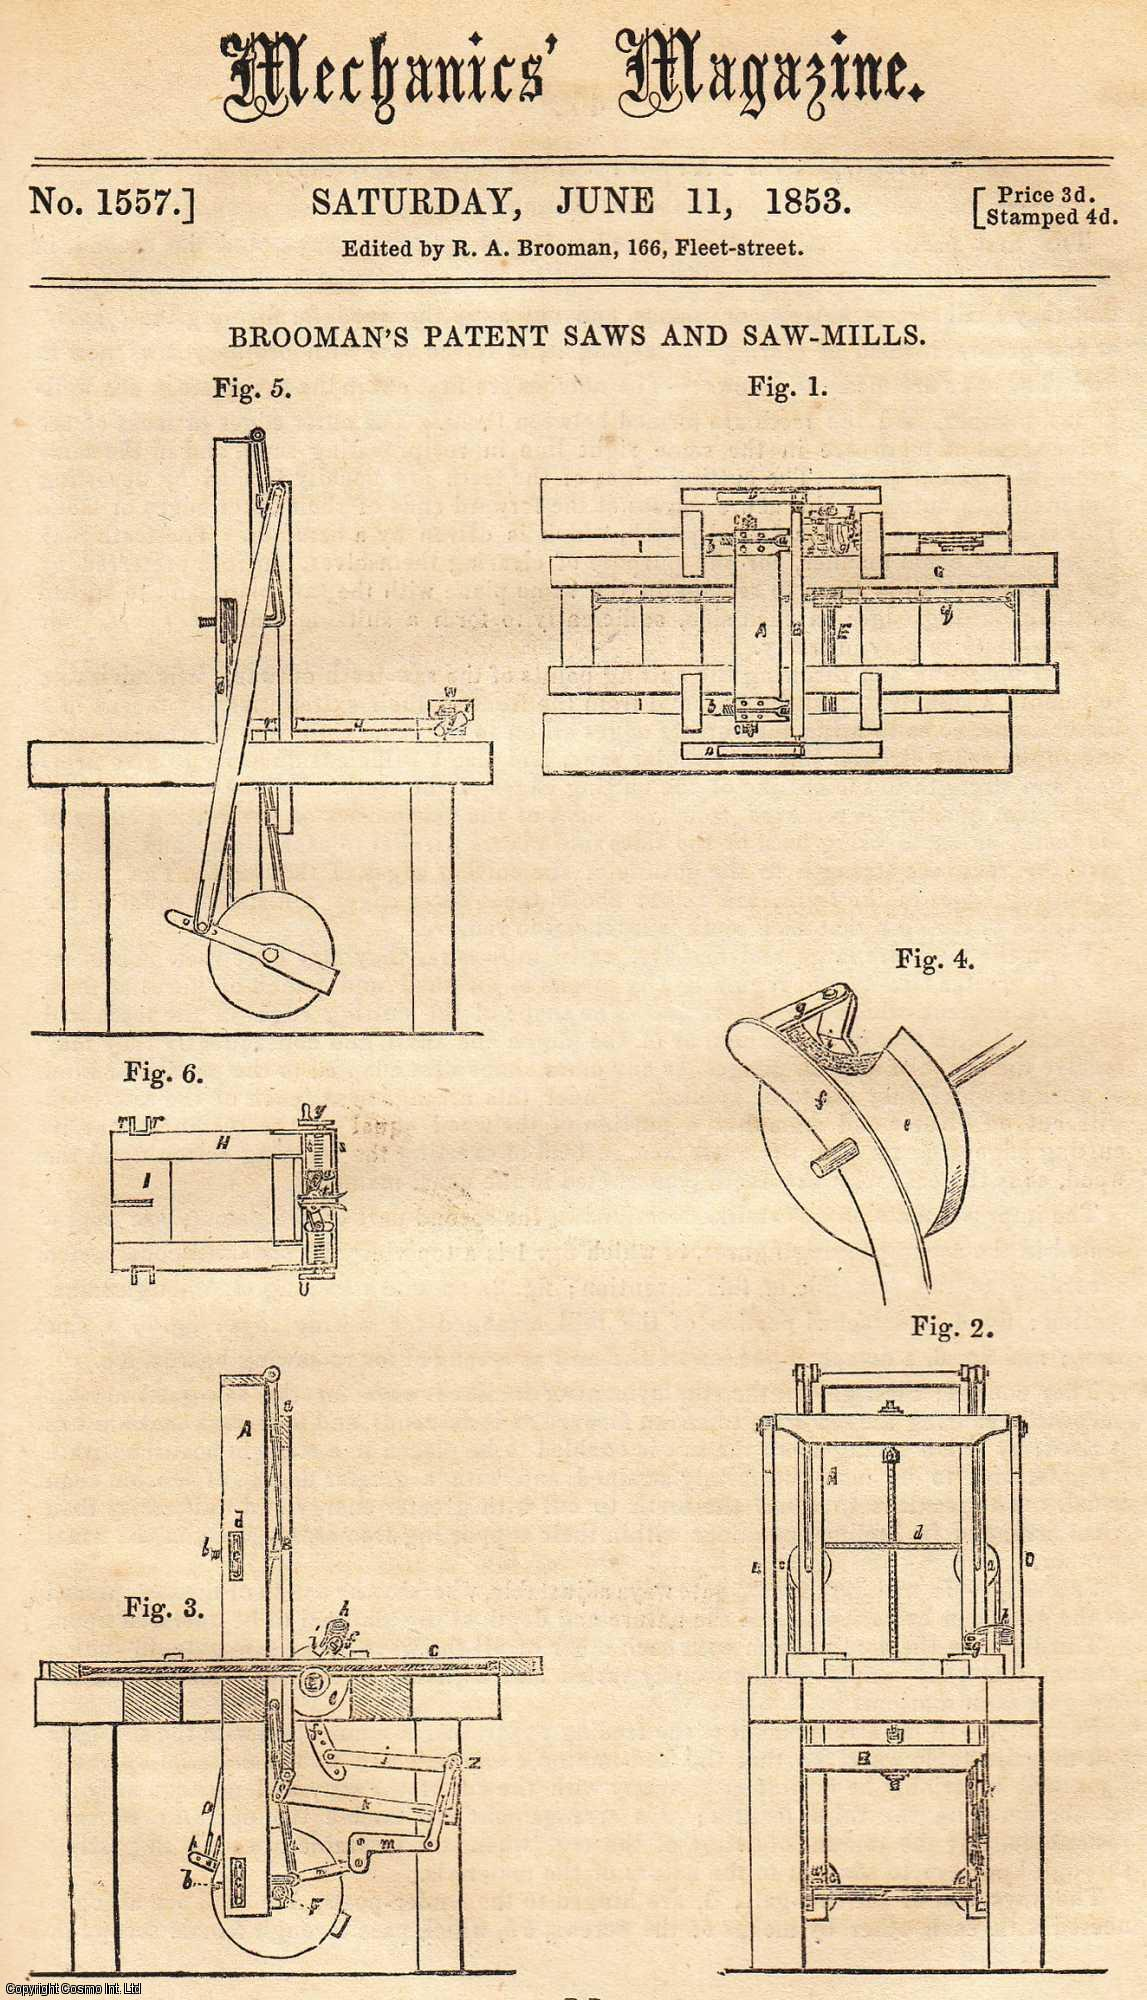 ---. - Brooman's Patent Saws And Saw-Mills; The Darien Ship Canal; Submersion Of The Dutch Telegraphic Cable; Iron Roofs Of Large Span; Steam On The Leeds And Liverpool Canal; Rosenkilde's Patent Window-Sash Spring; Chemical Gold-Washing, etc. Mechanics Magazine, Museum, Register, Journal and Gazette. Issue No. 1557. A complete rare weekly issue of the Mechanics' Magazine, 1853.